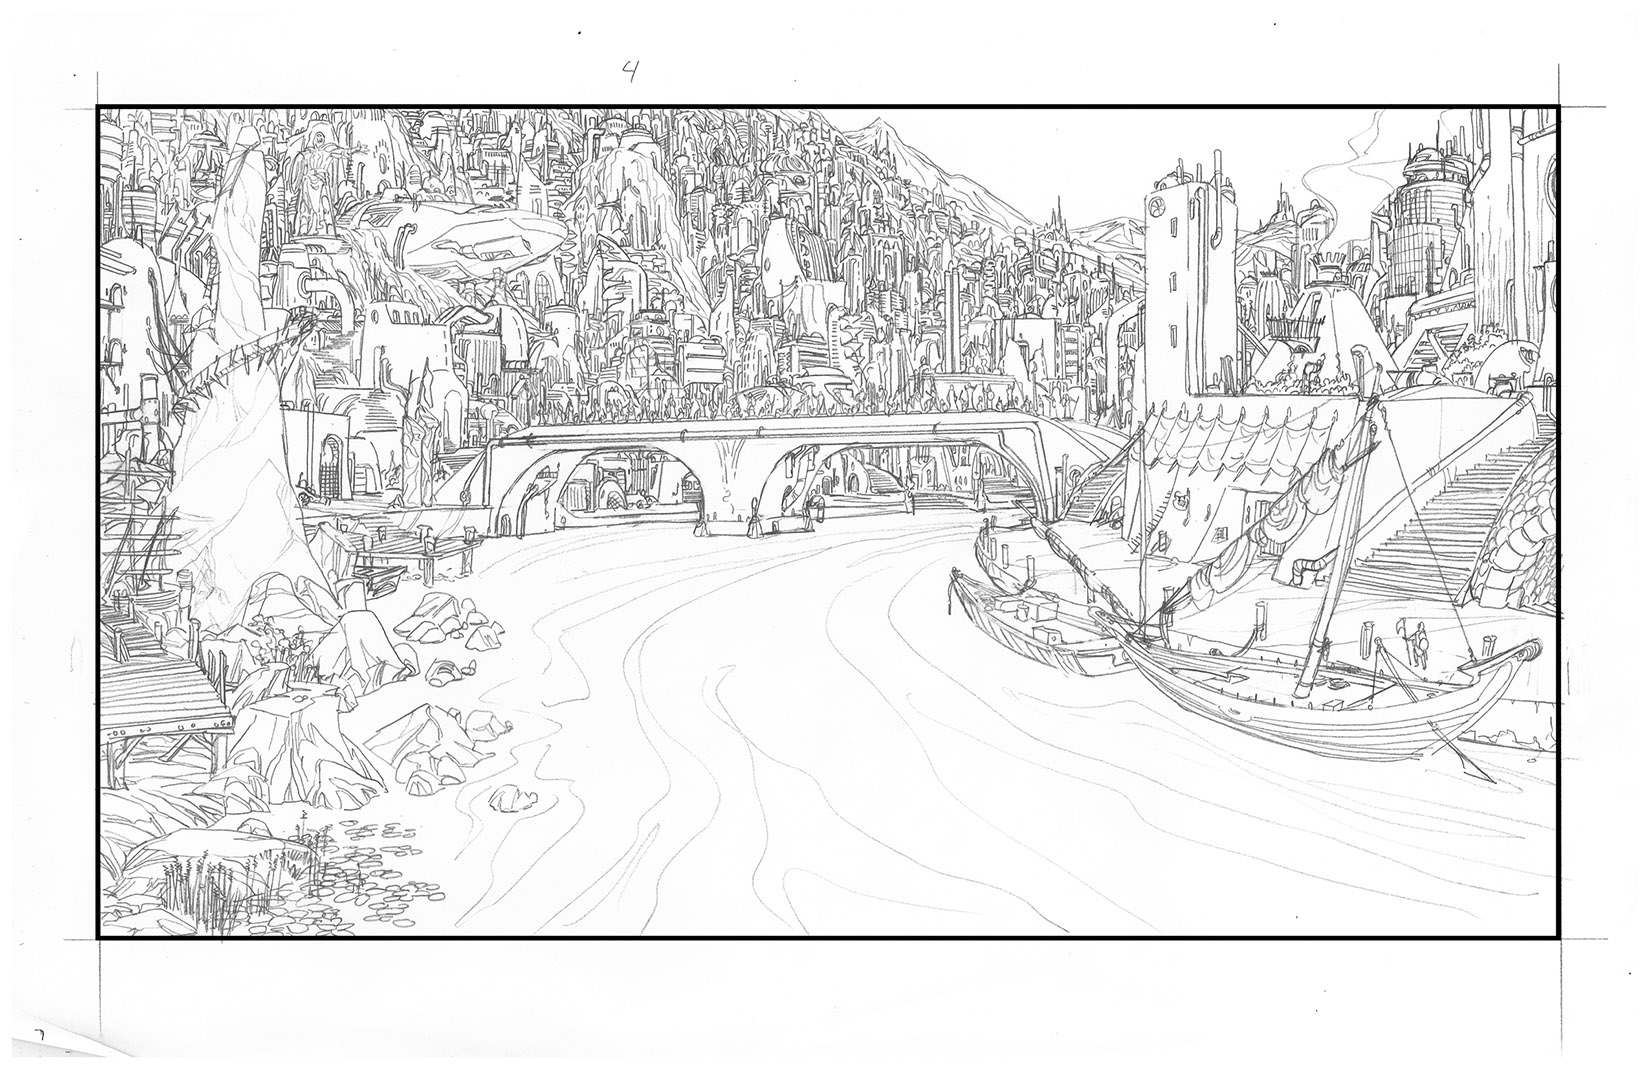 Scene4_ChannelsAndDocks_Pencil